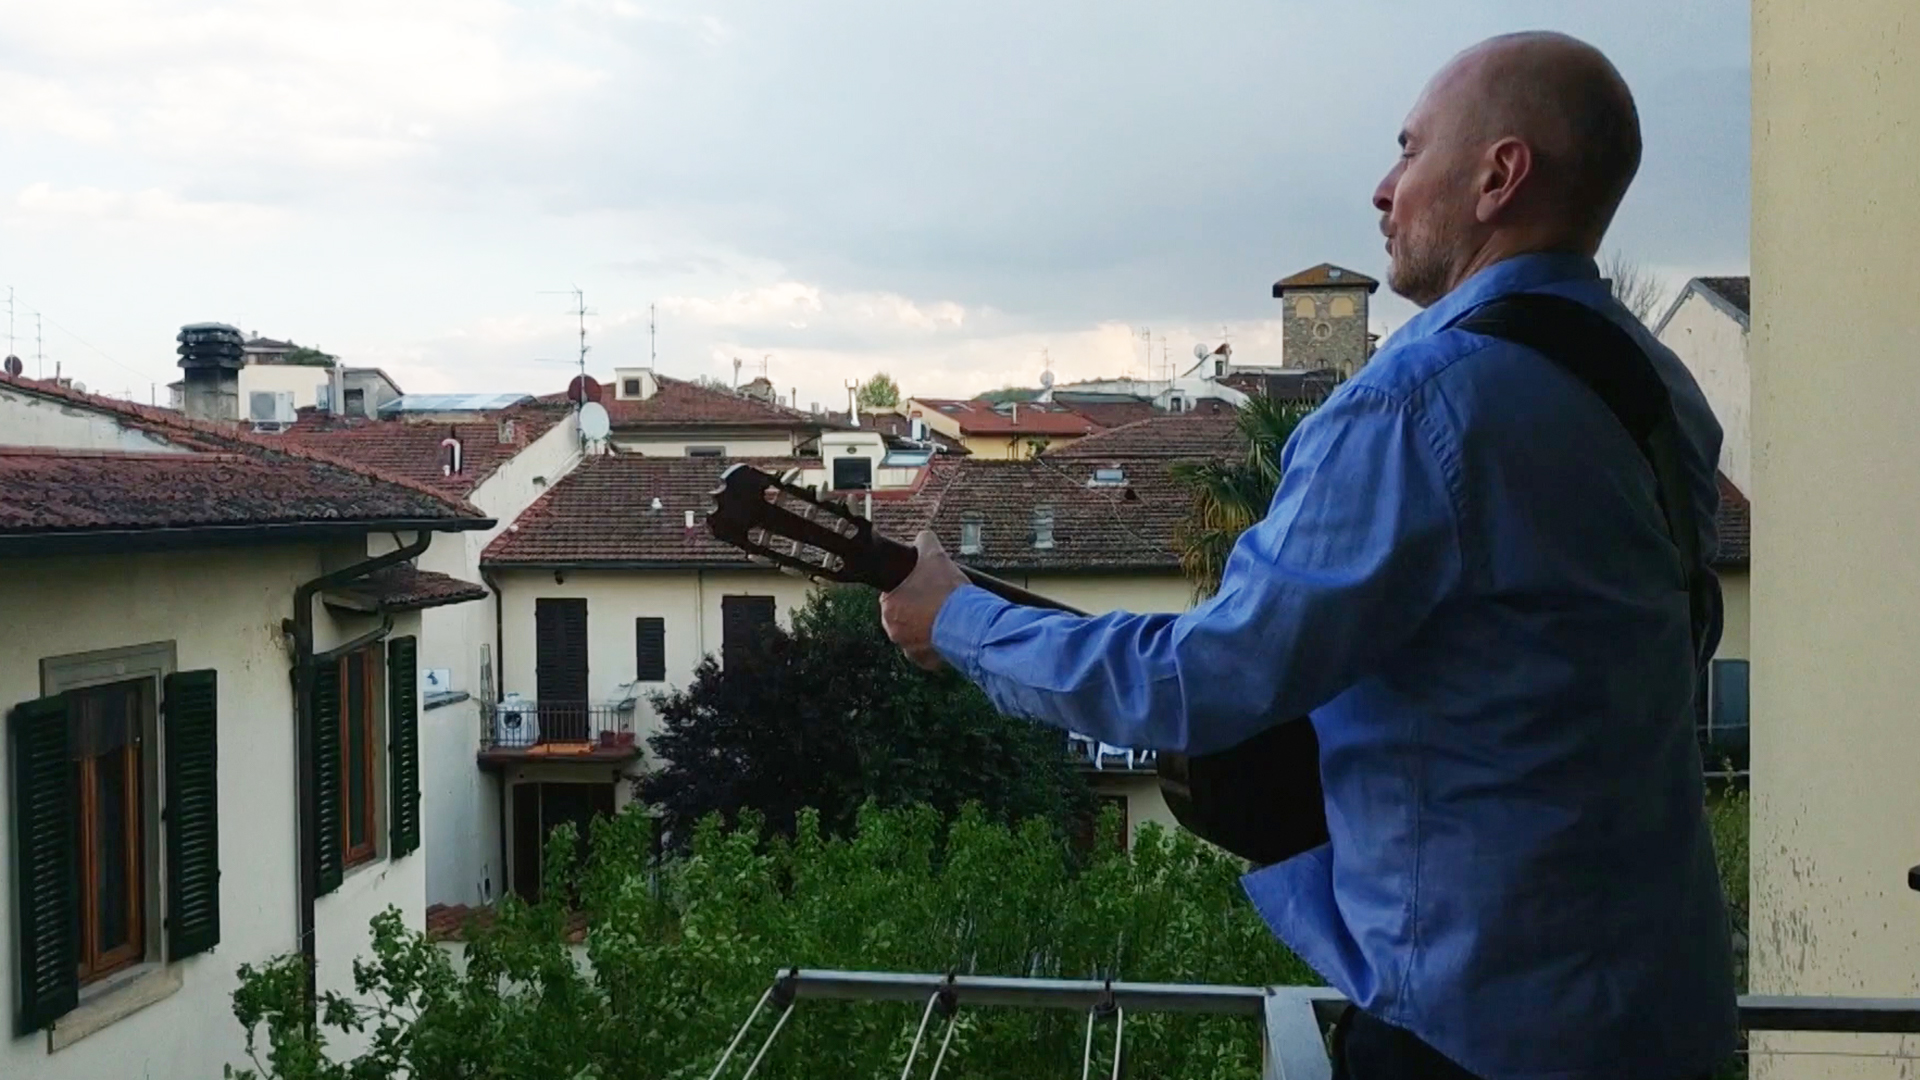 , That Viral Italian Opera Singer Took Time Off to Mourn a Friend — And Now He's Back on His Balcony, Saubio Making Wealth